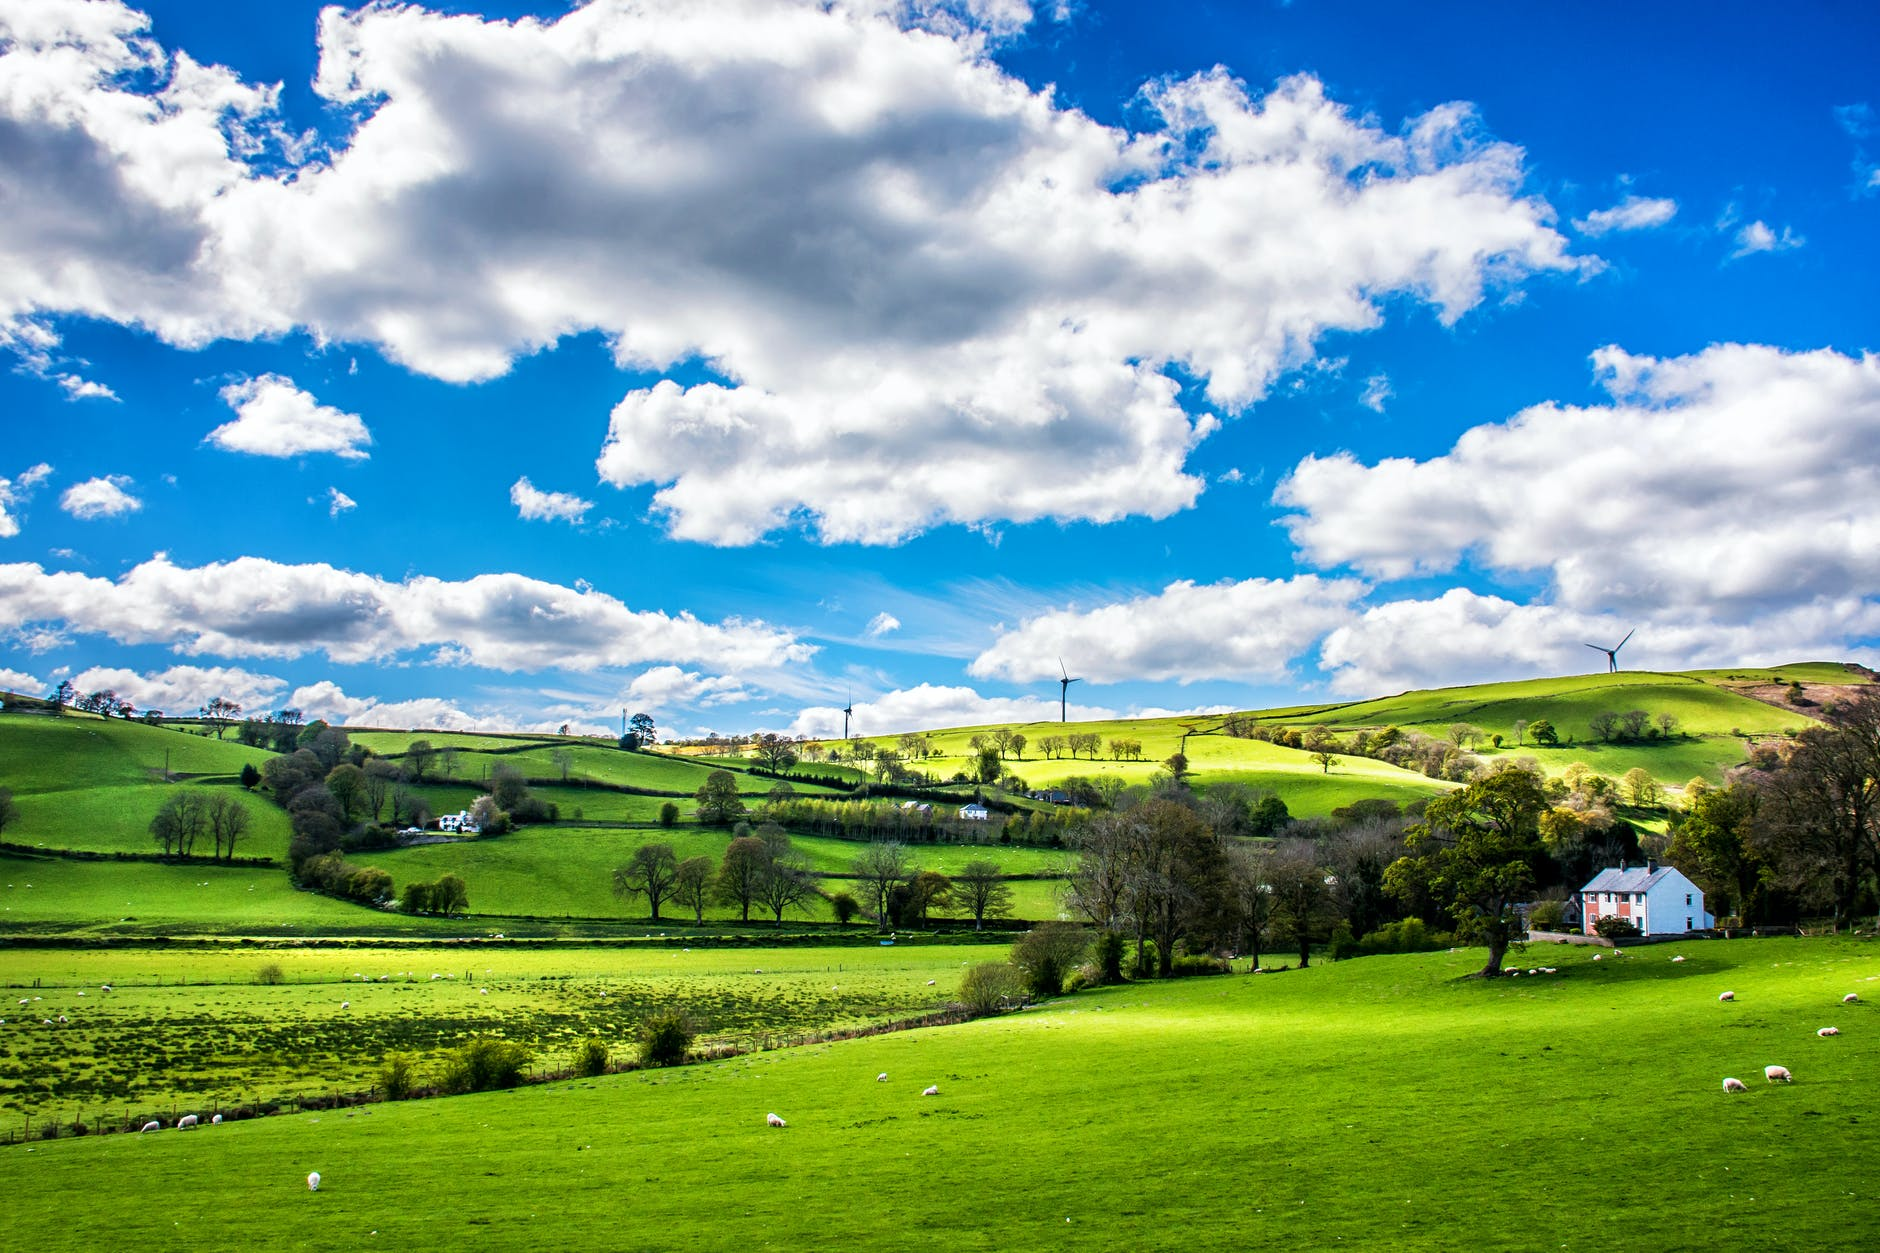 green leafed trees under blue sky in the countryside